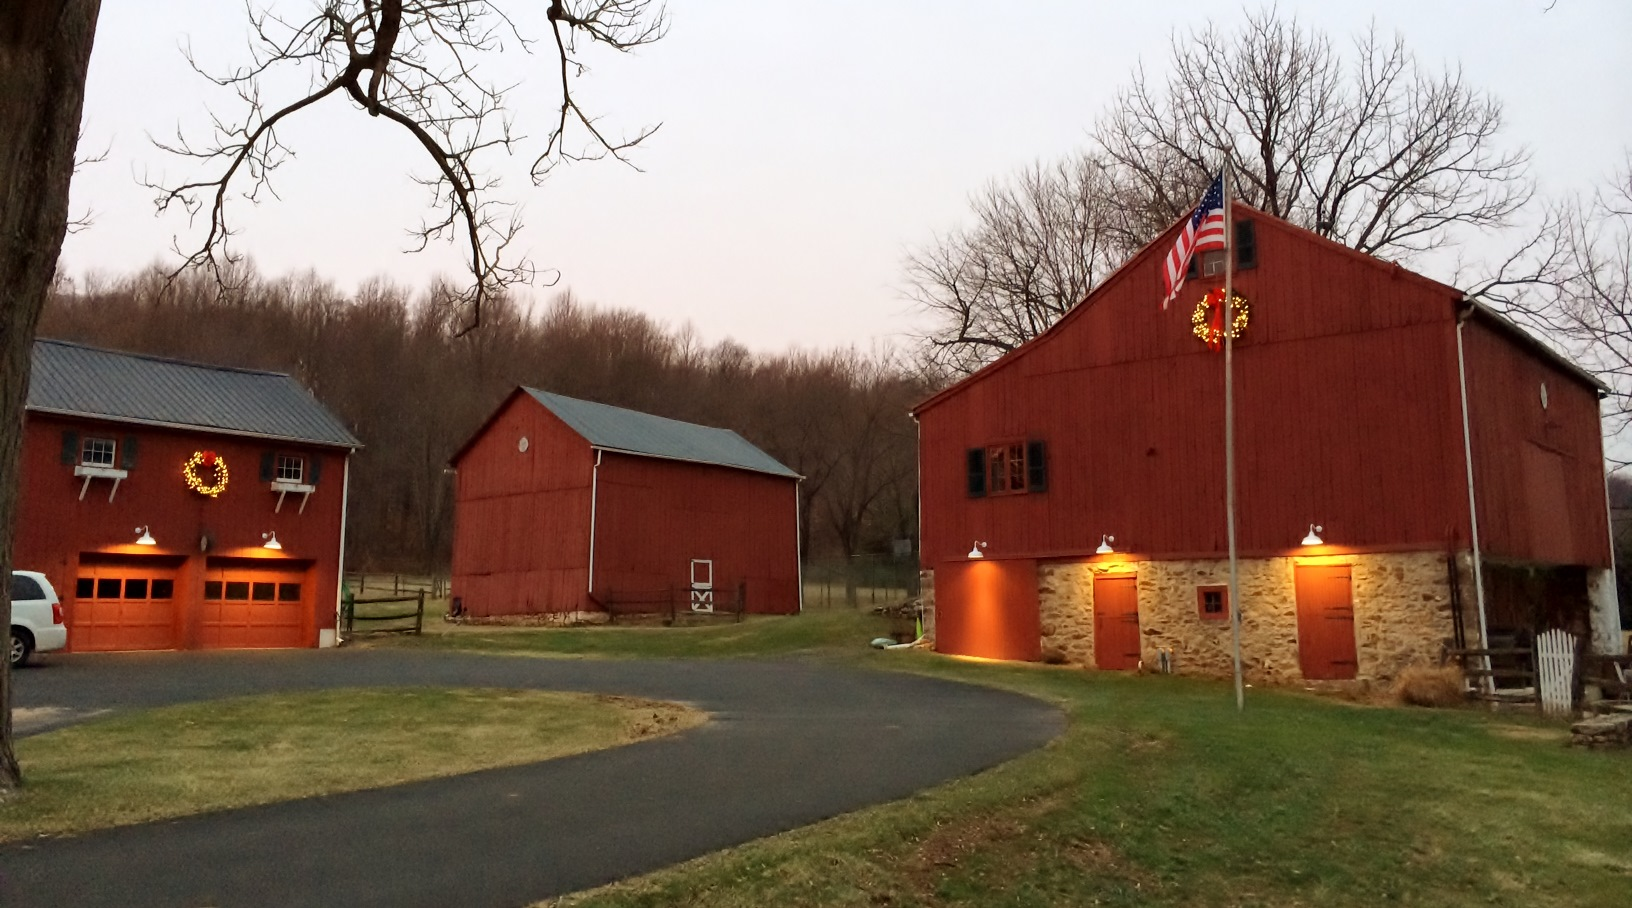 Classic Barn Lights For Pennsylvania Barns U0026 Carriage House | Blog |  BarnLightElectric.com